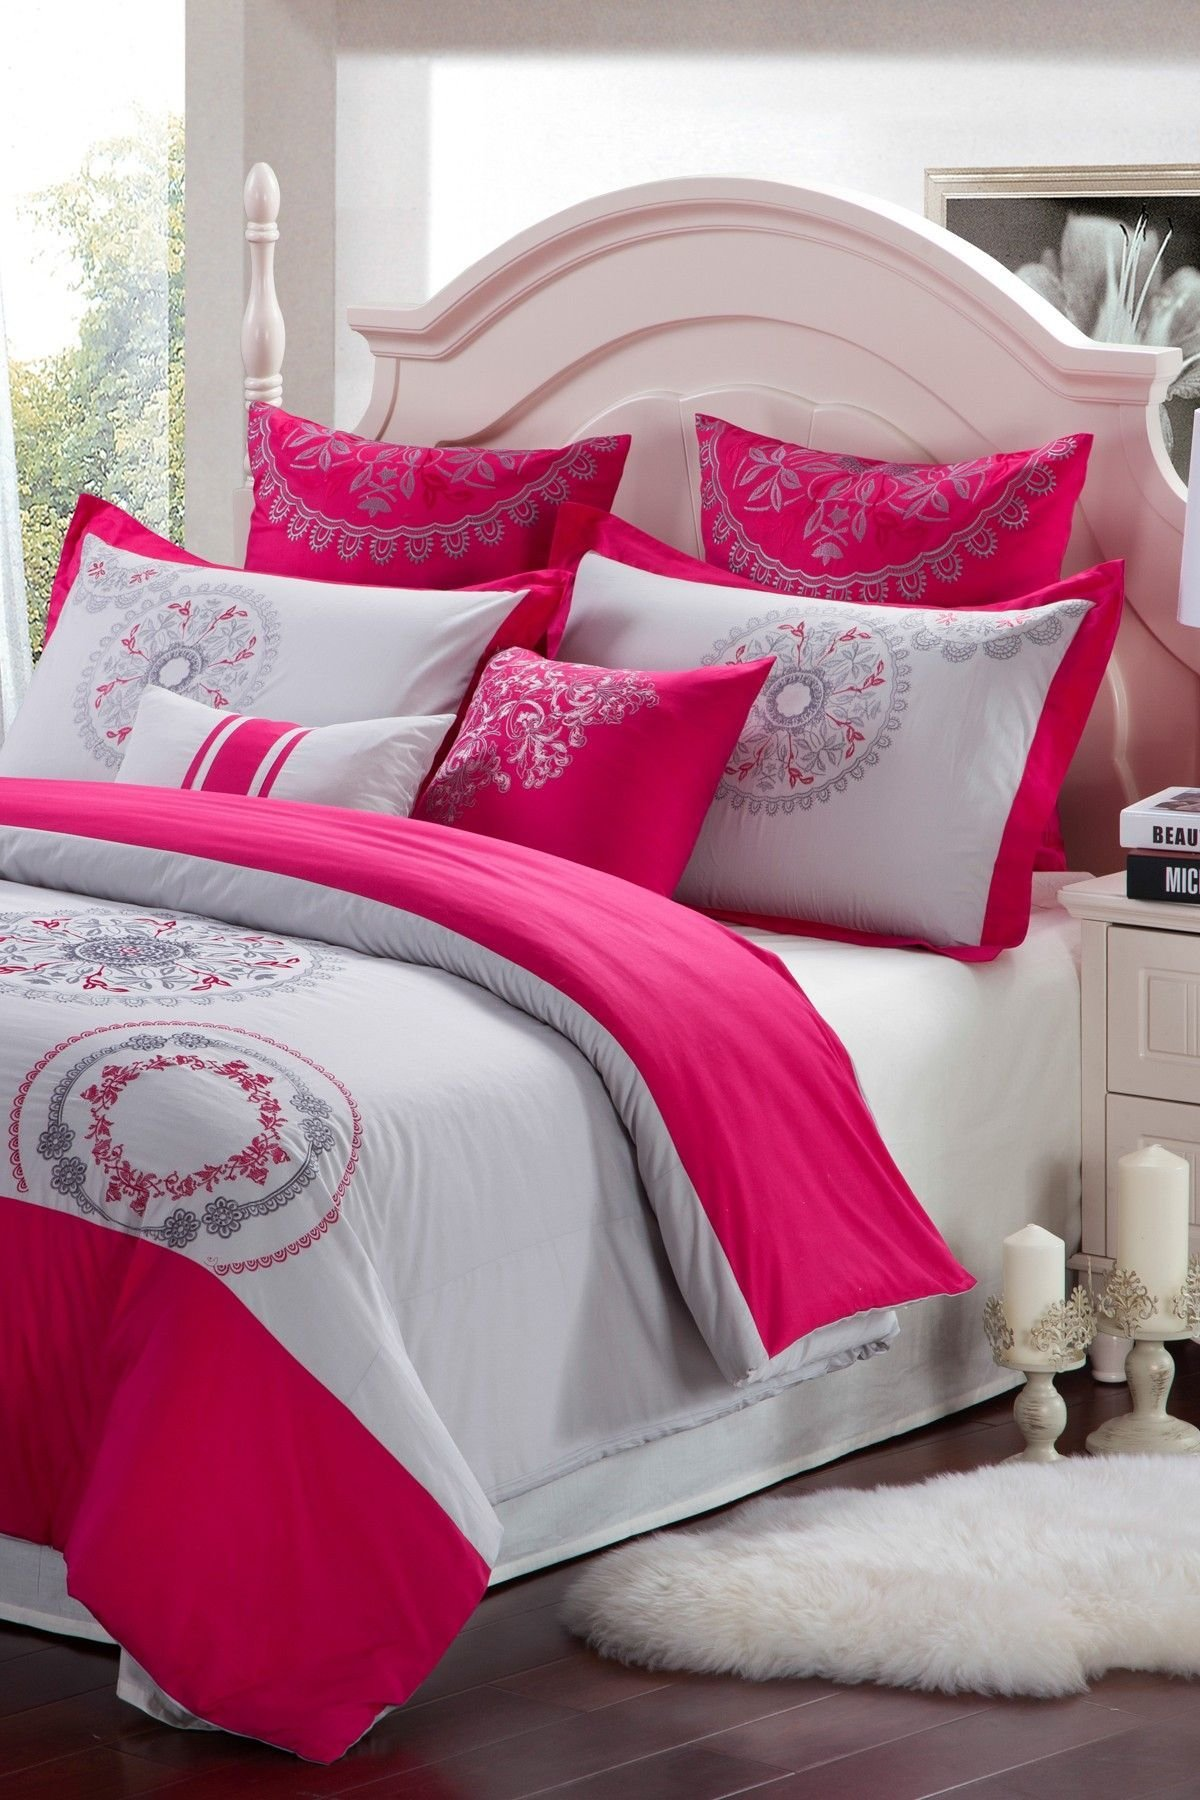 Best Majestic Cotton Duvet Cover Raspberry Grey On Hautelook With Pictures